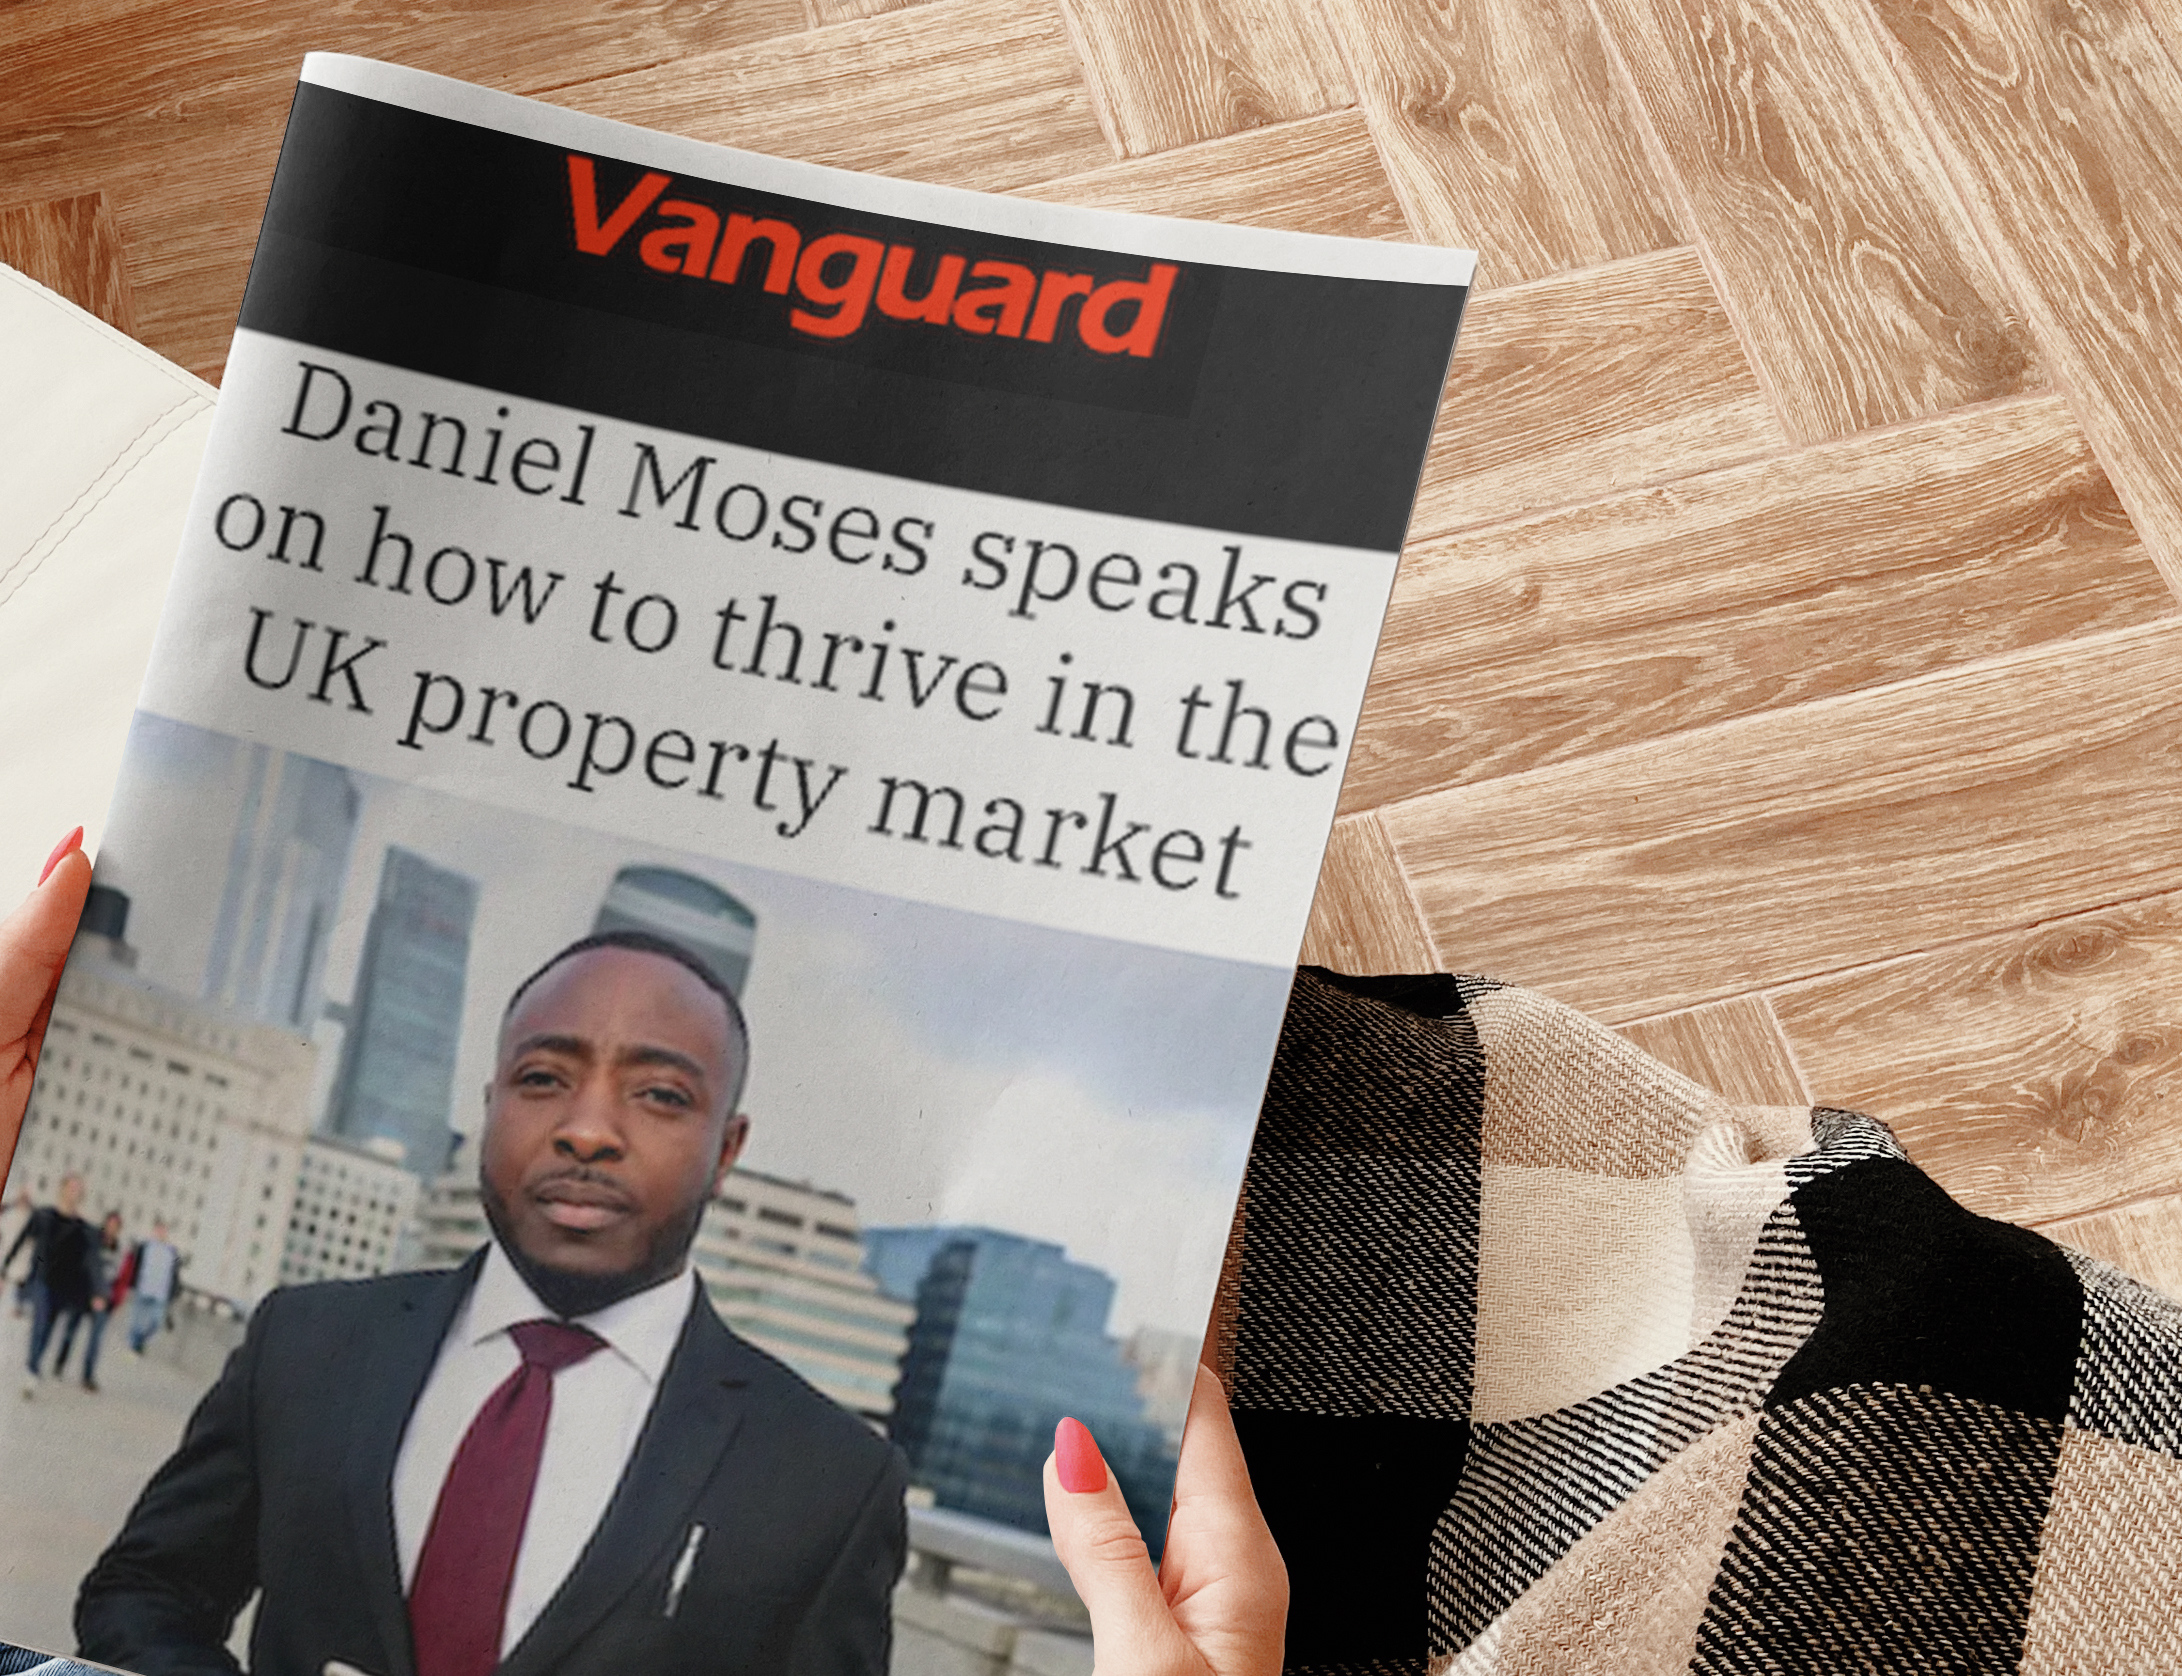 Daniel Moses speaks on how to thrive in the UK property market